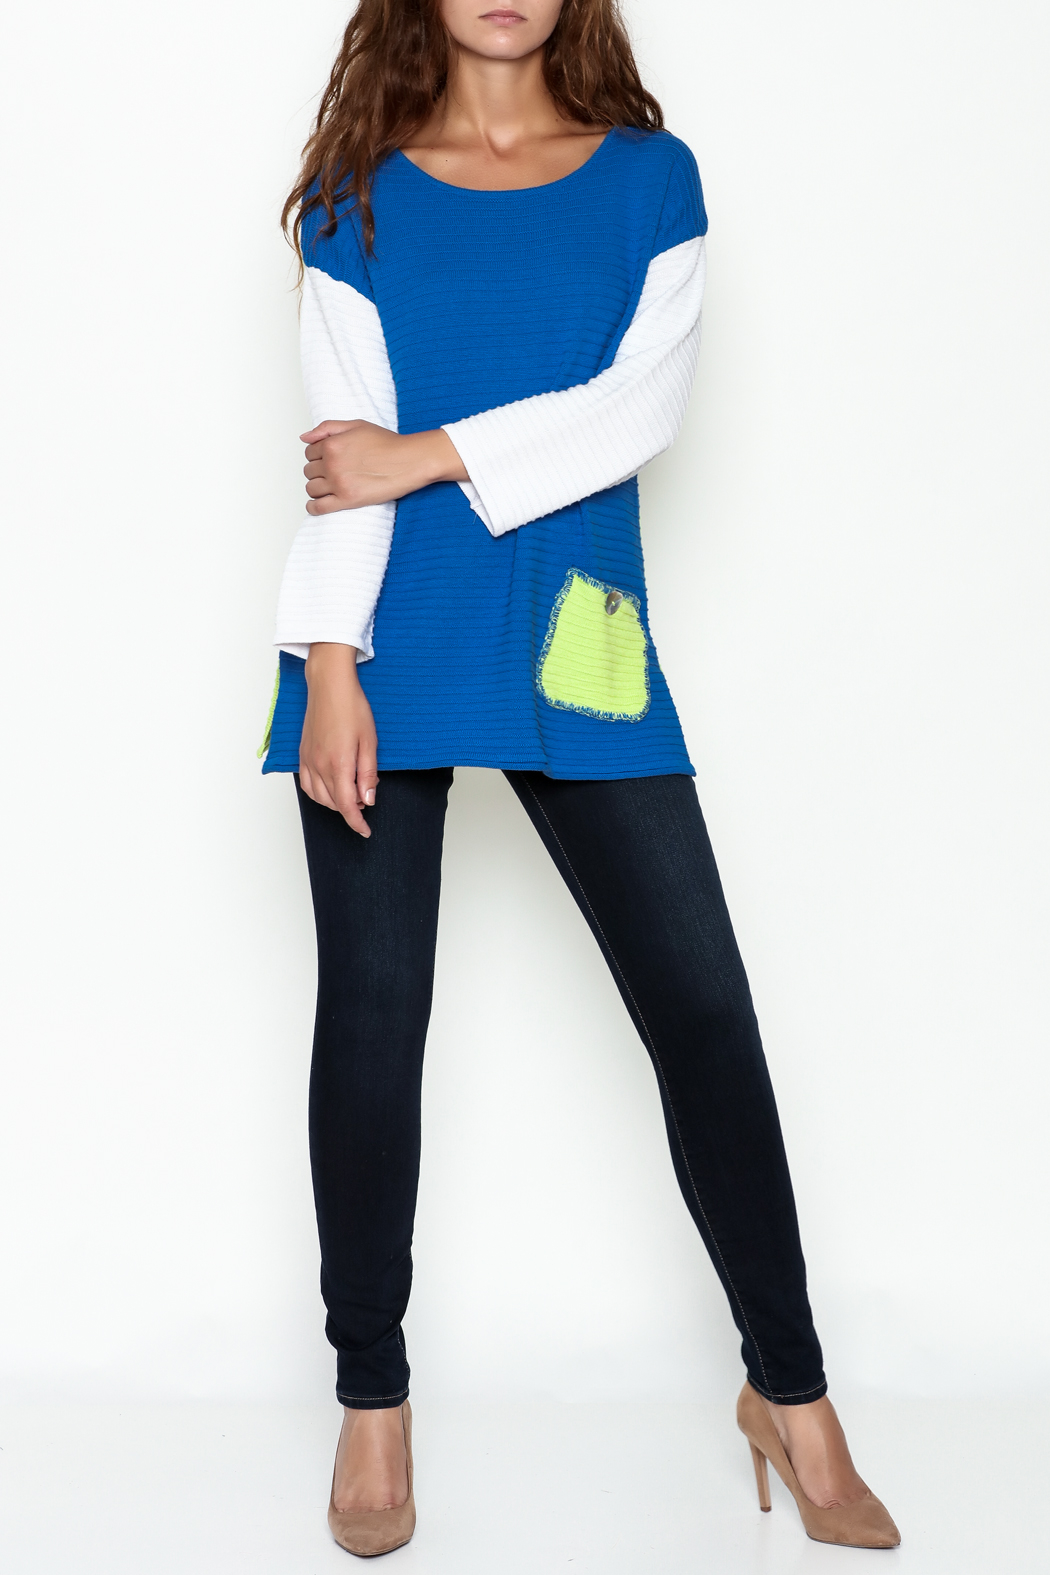 Lulu B Color Block Sweater - Side Cropped Image